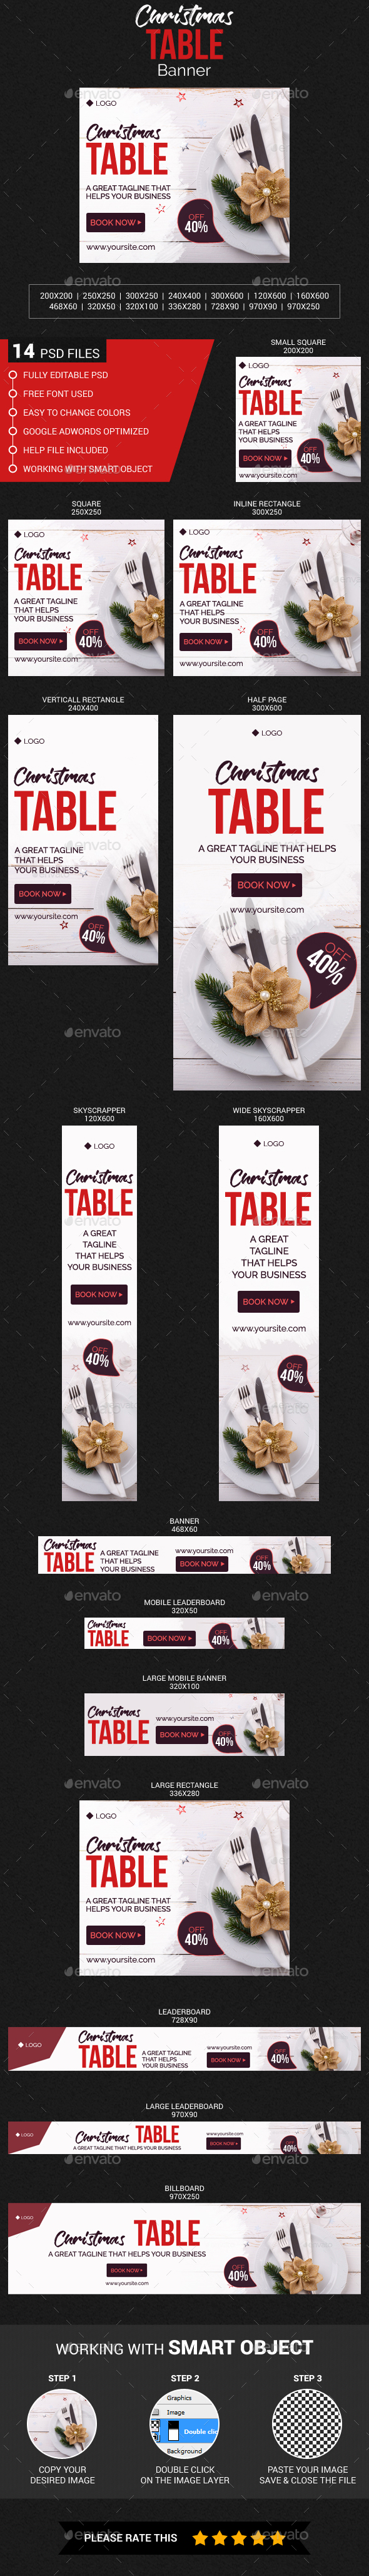 Christmas Table Banner - Banners & Ads Web Elements